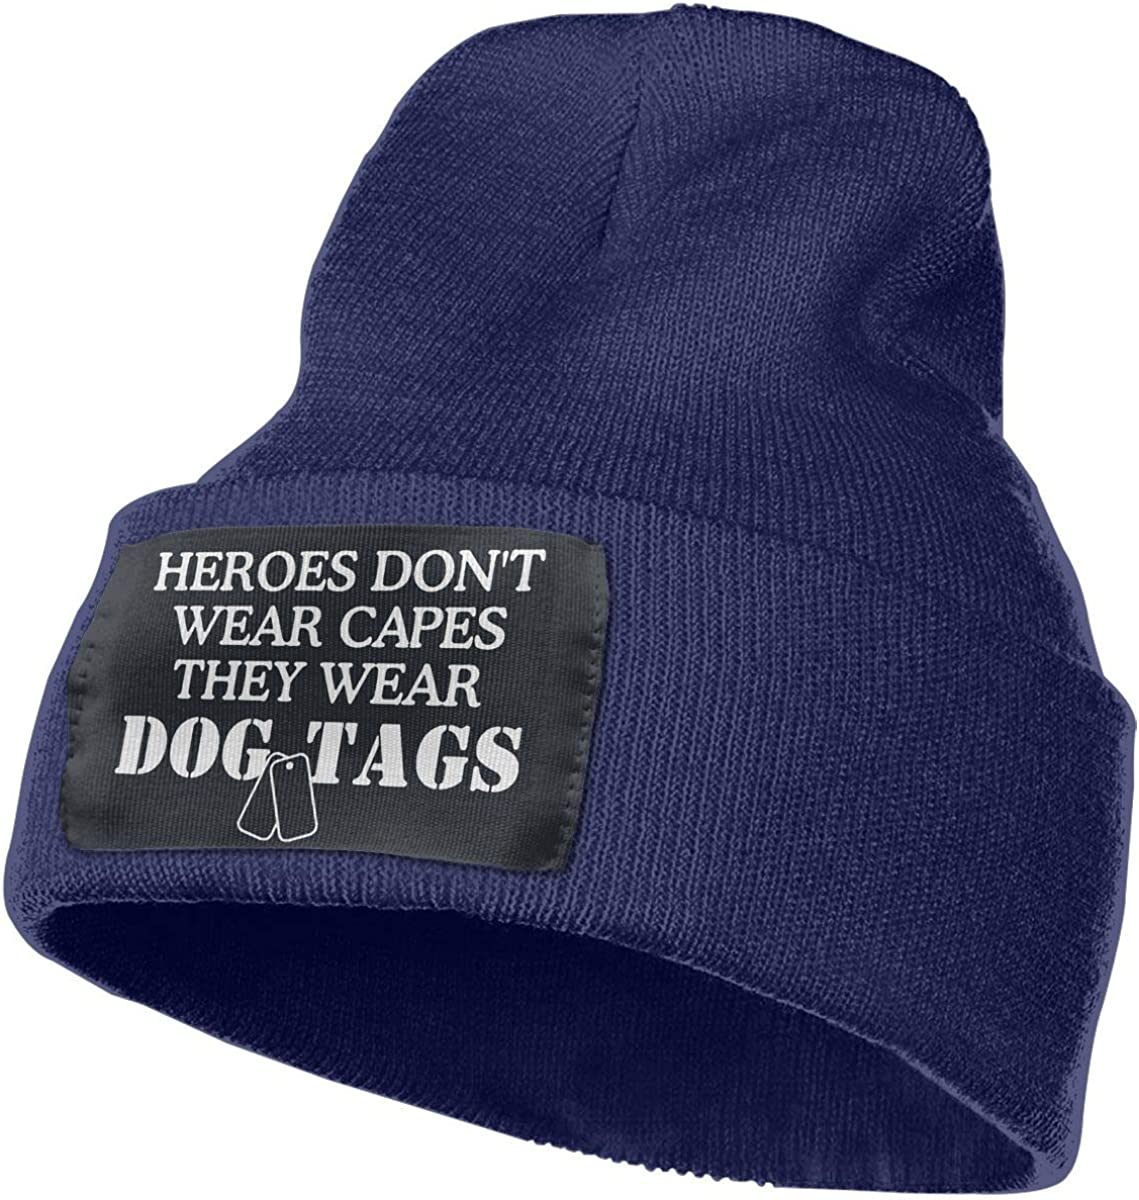 Beanie Heroes Dont Wear Capes They Wear Dog Tags Knitted Hat Winter Skullcap Men Women